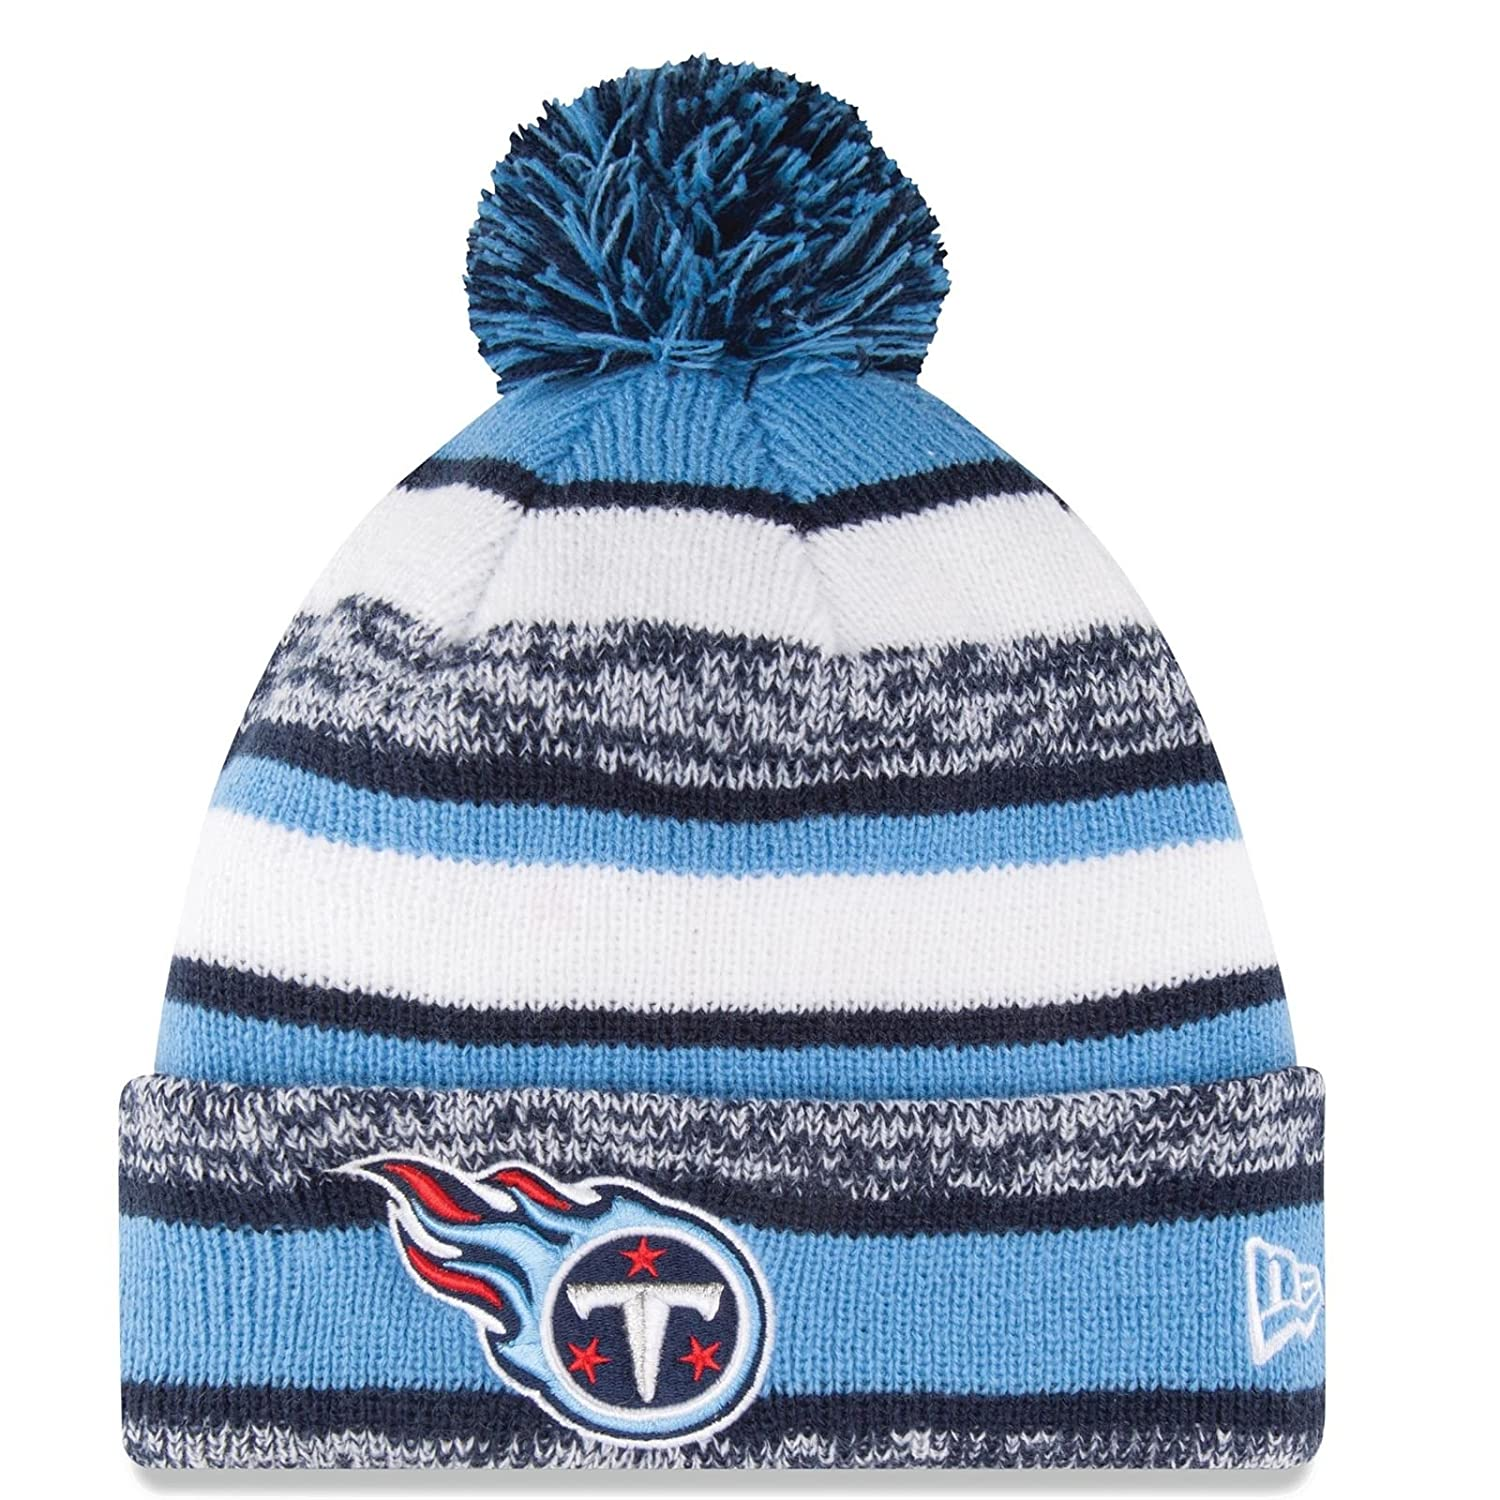 85ce9ef9d Amazon.com   Tennessee Titans Beanie New Era Sideline Cuffed Knit Hat    Sports   Outdoors